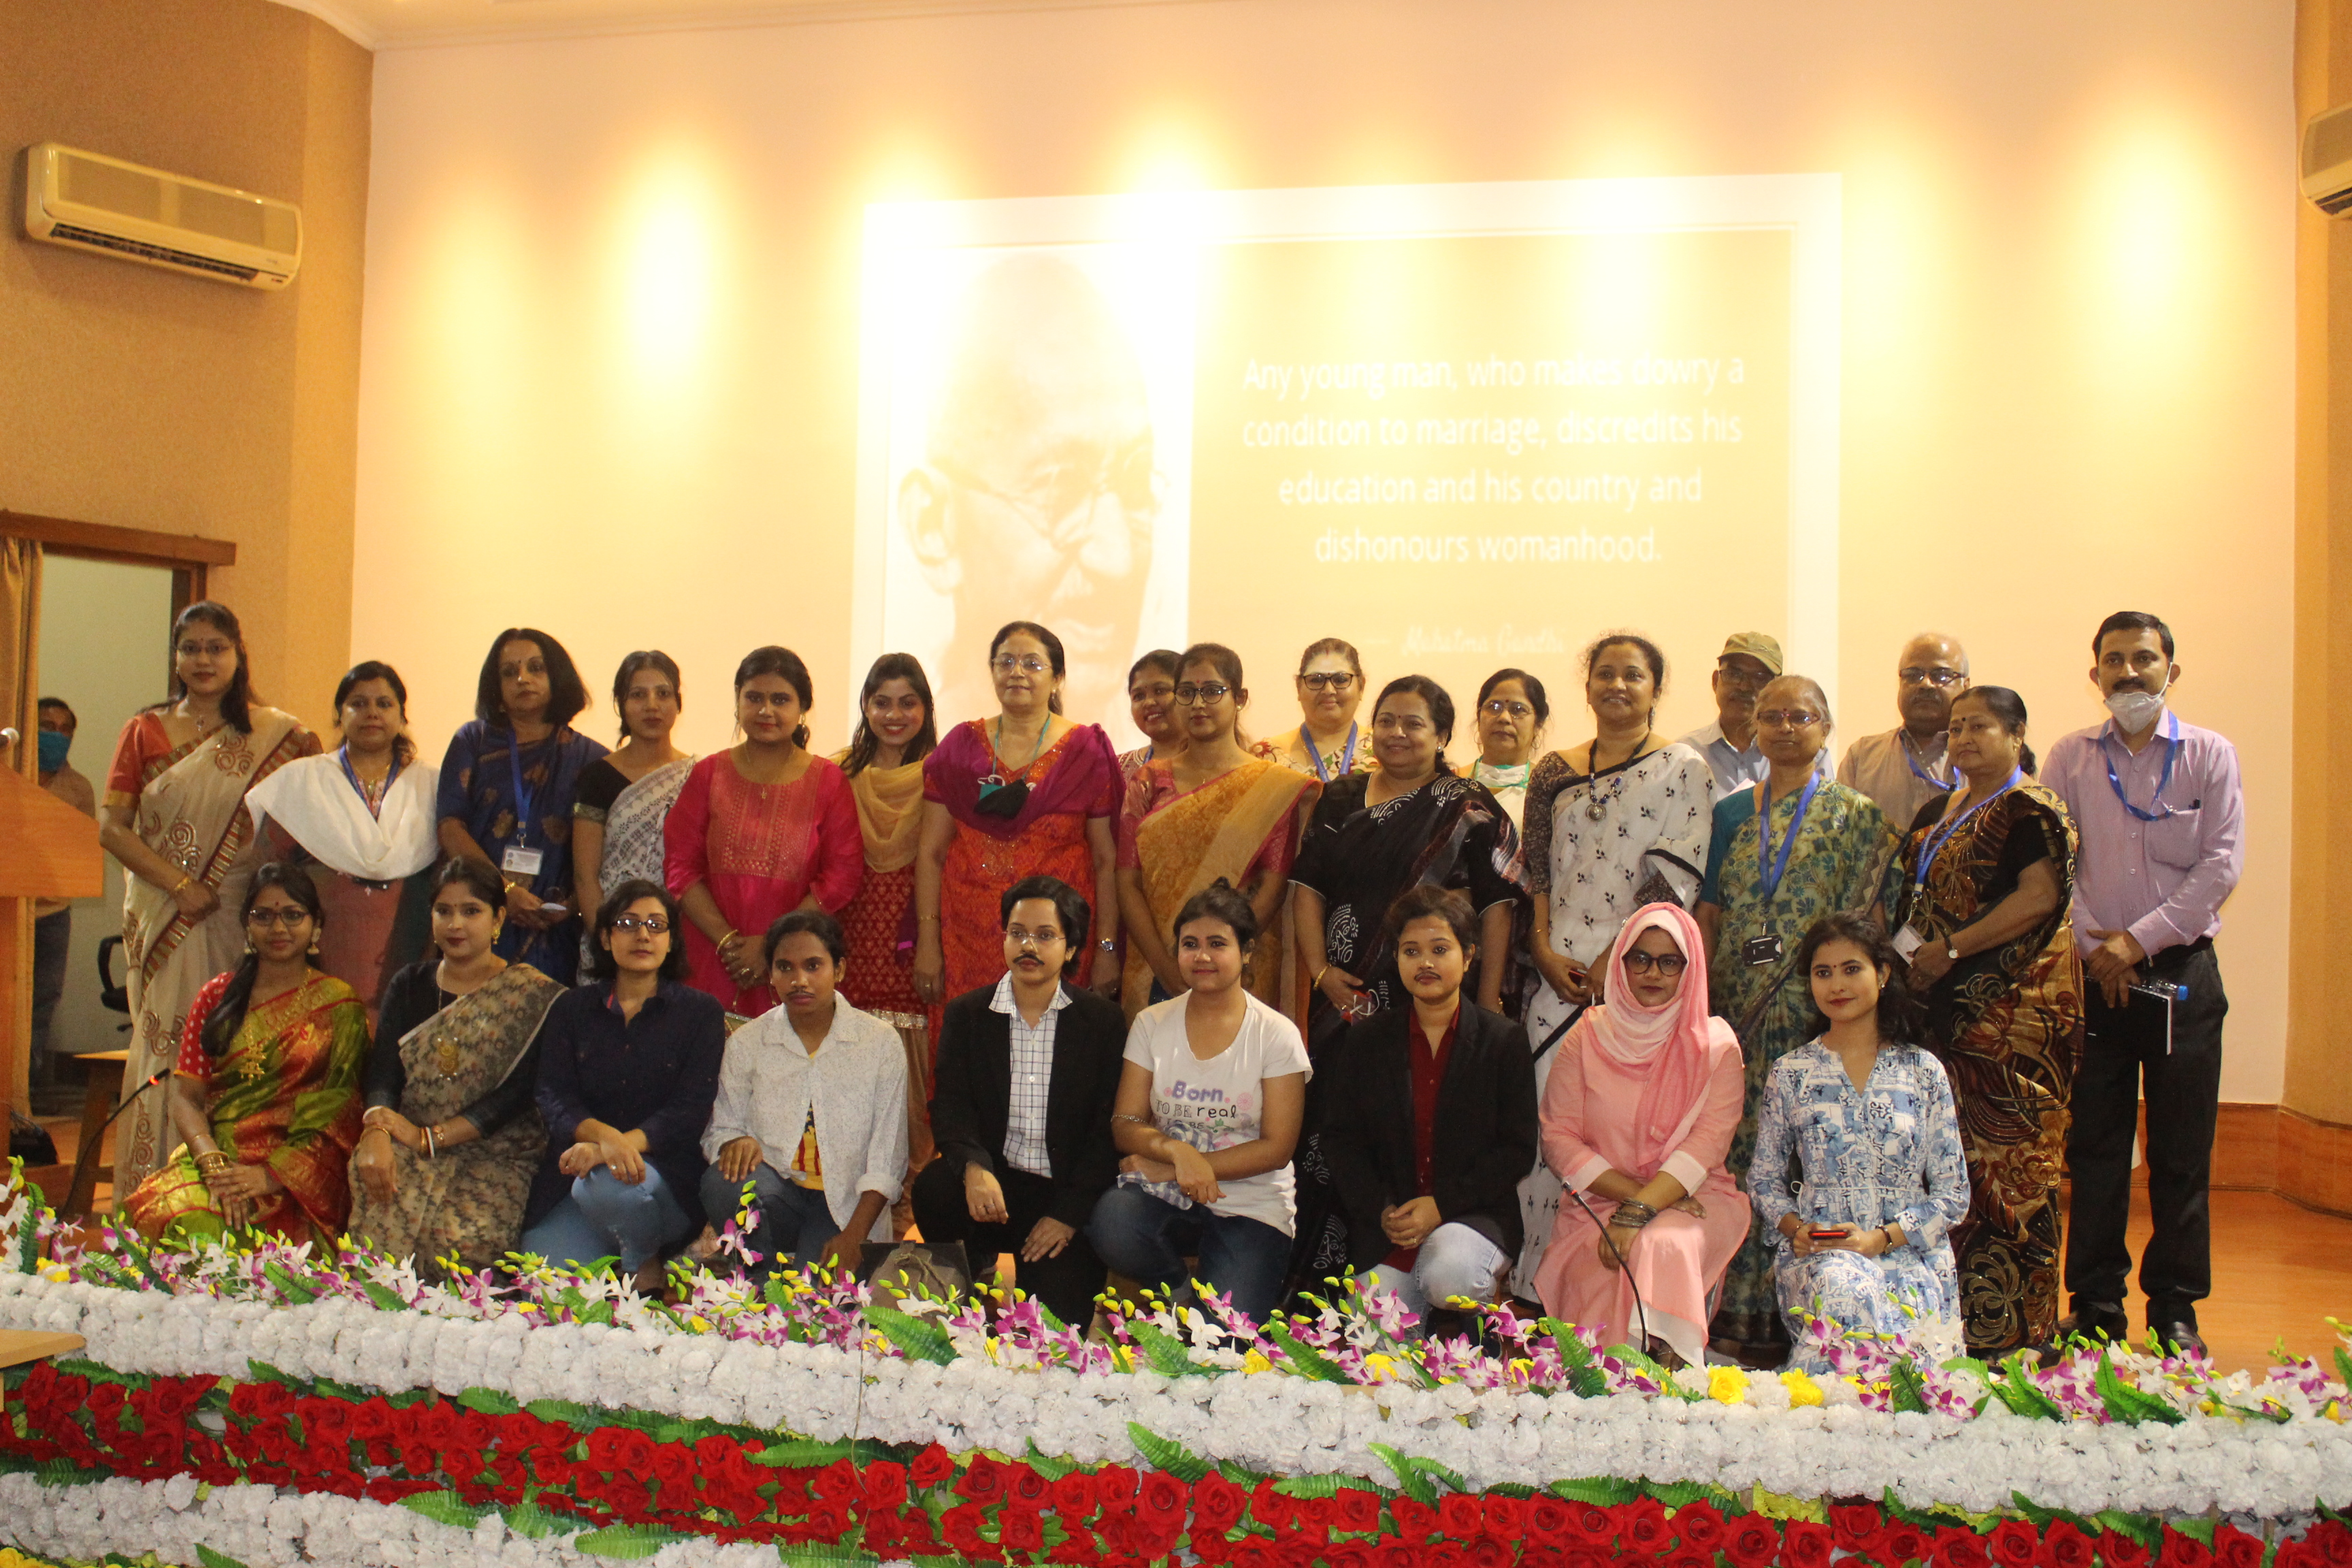 CSIR-CGCRI, Kolkata celebrated International Women's Day 2021 with an online lecture, Panel discussion and skits.